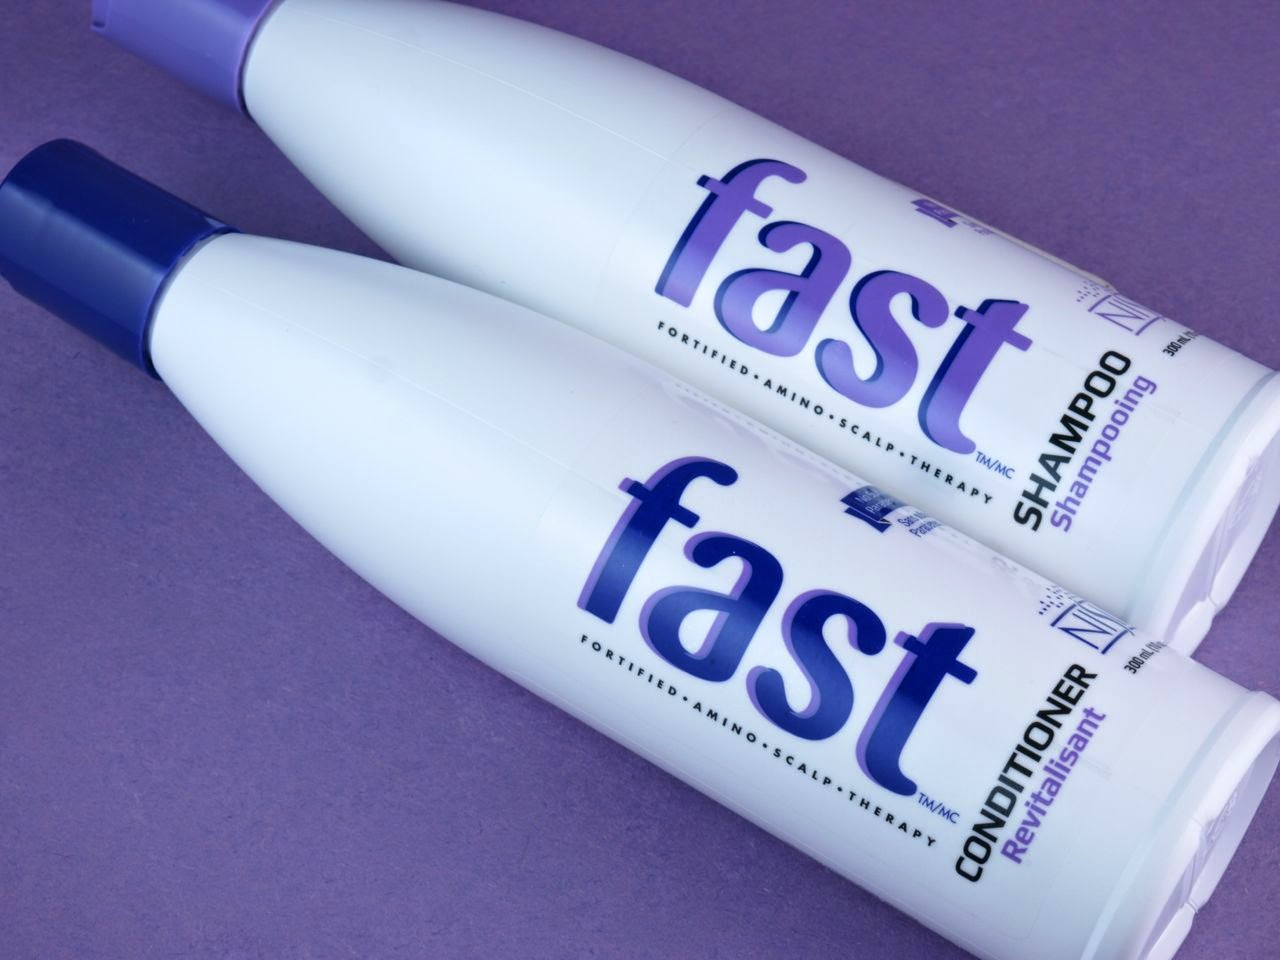 Nisim F.A.S.T. Shampoo & Conditioner: Review